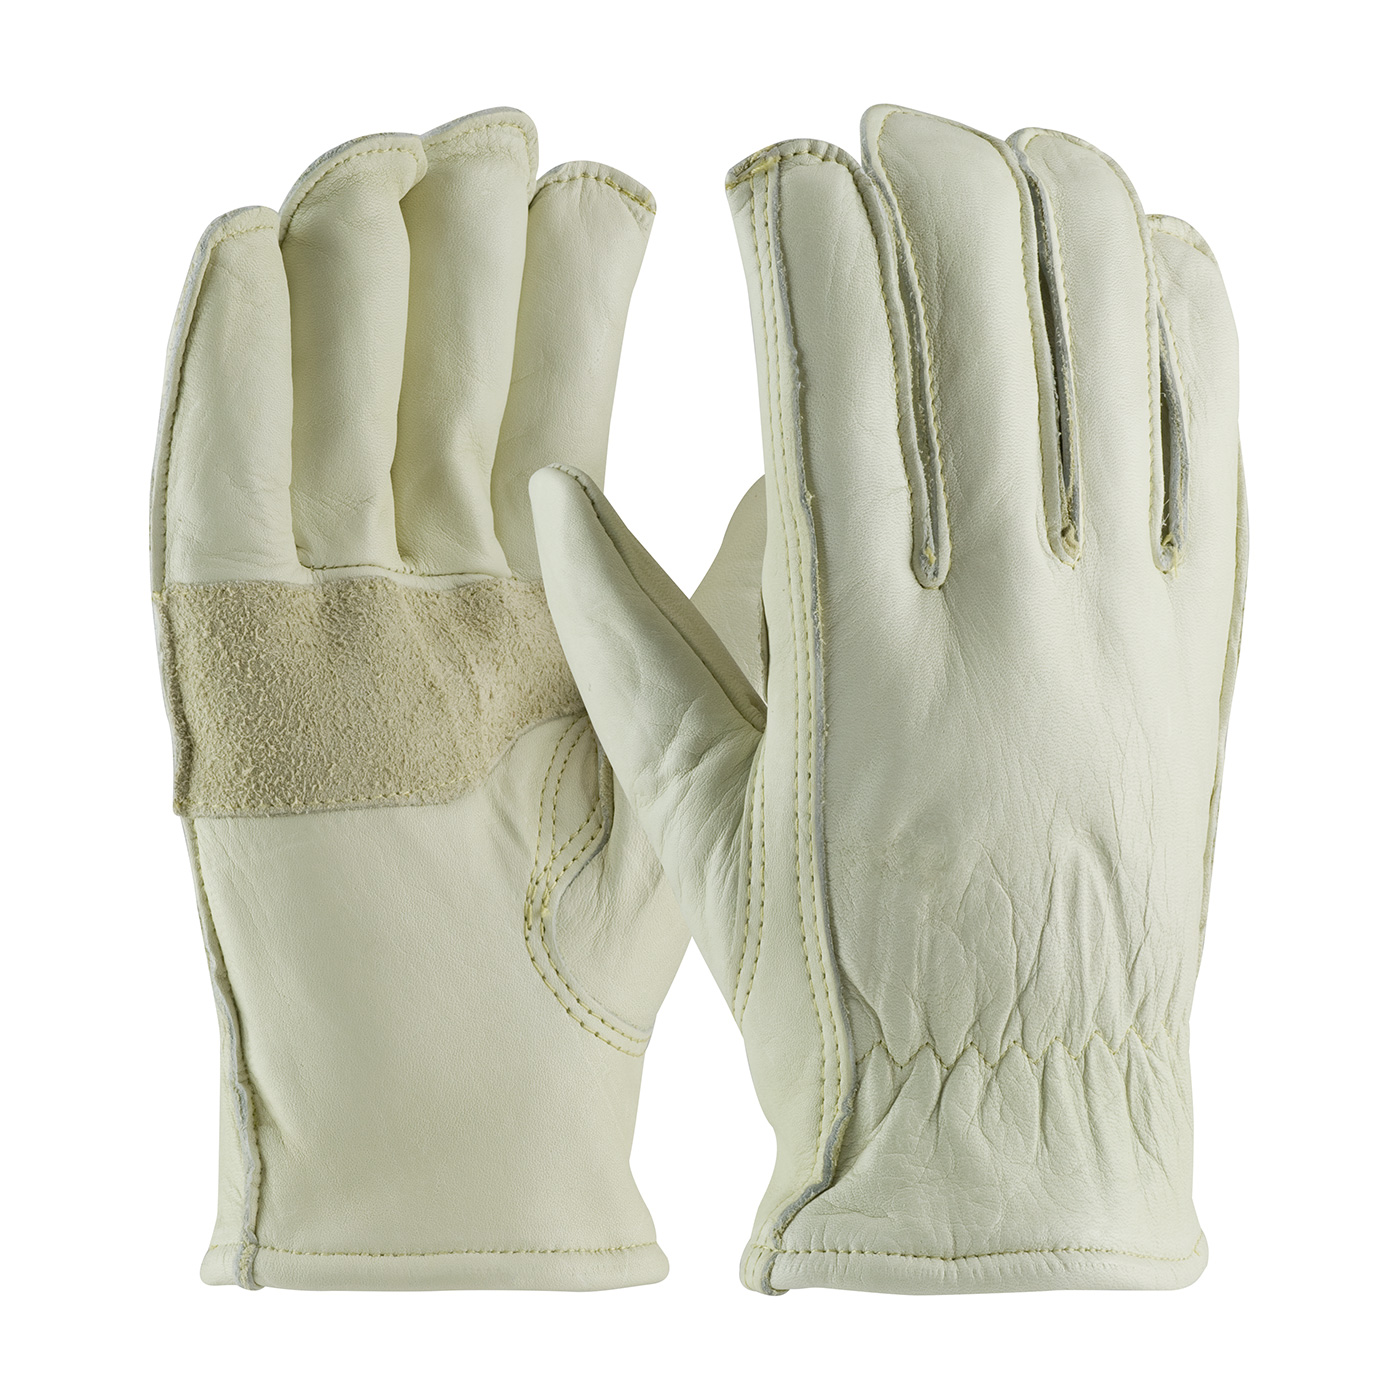 Premium Cowhide Fleece Lined Leather Gloves Insulated